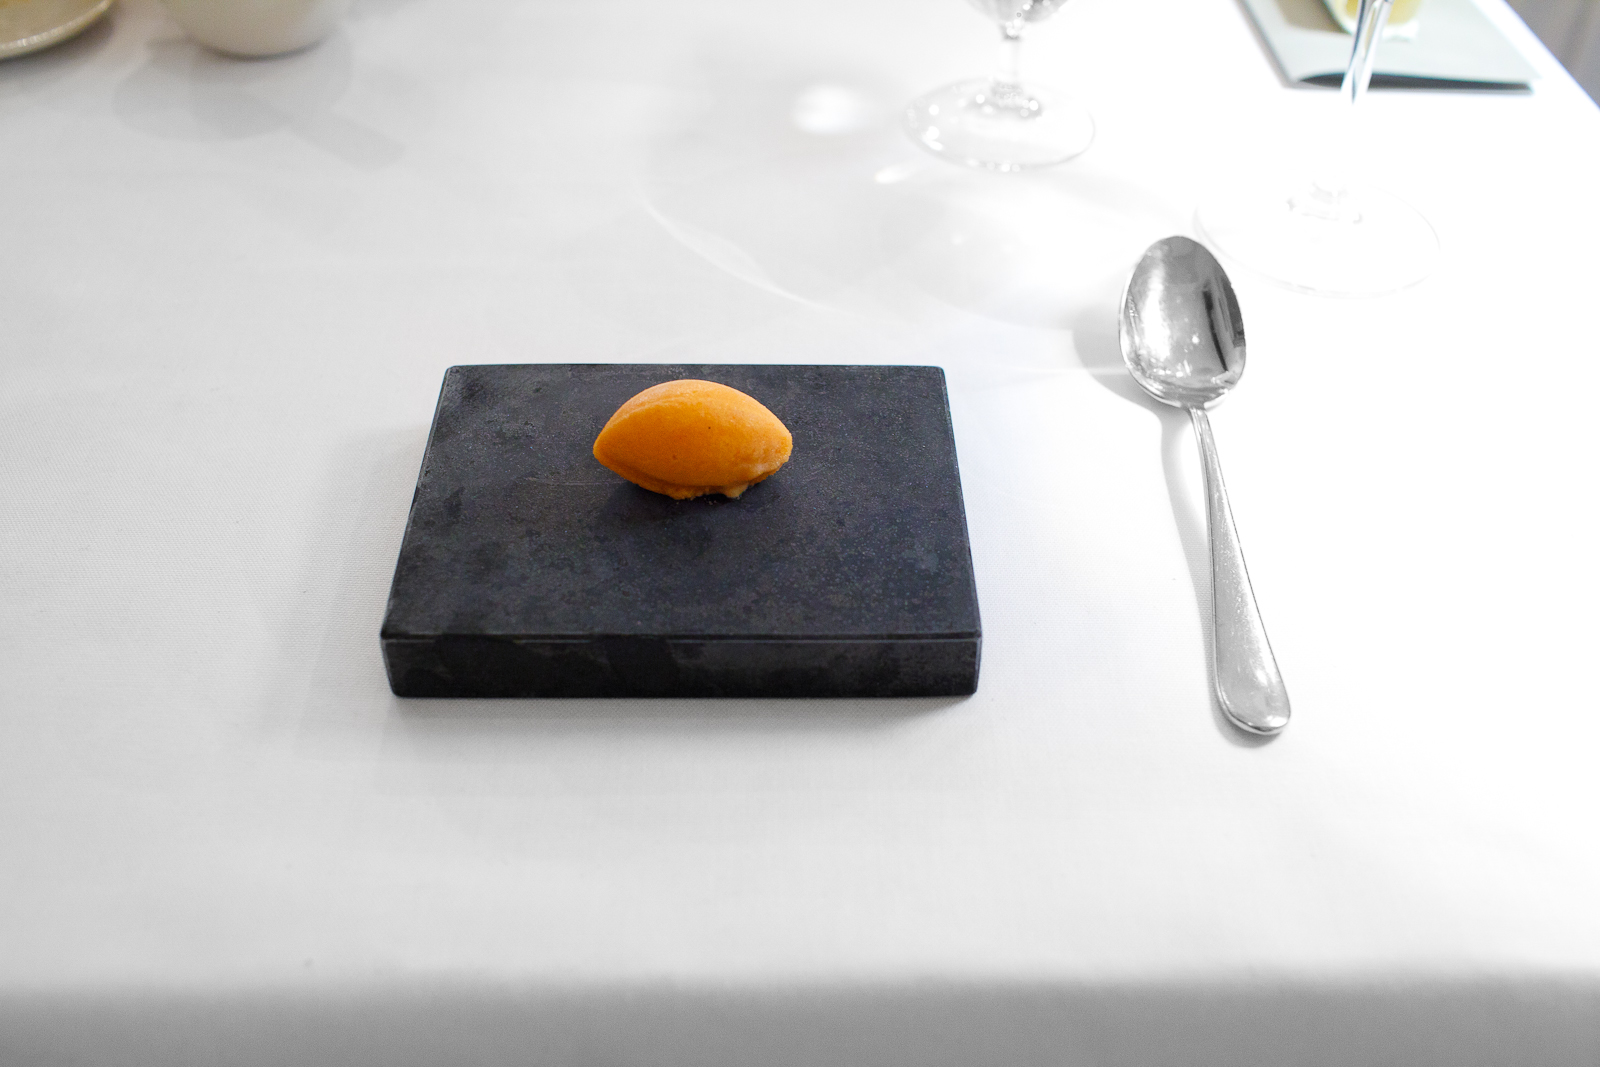 th Course: Frozen rowan berries and apple, flavored with black tea